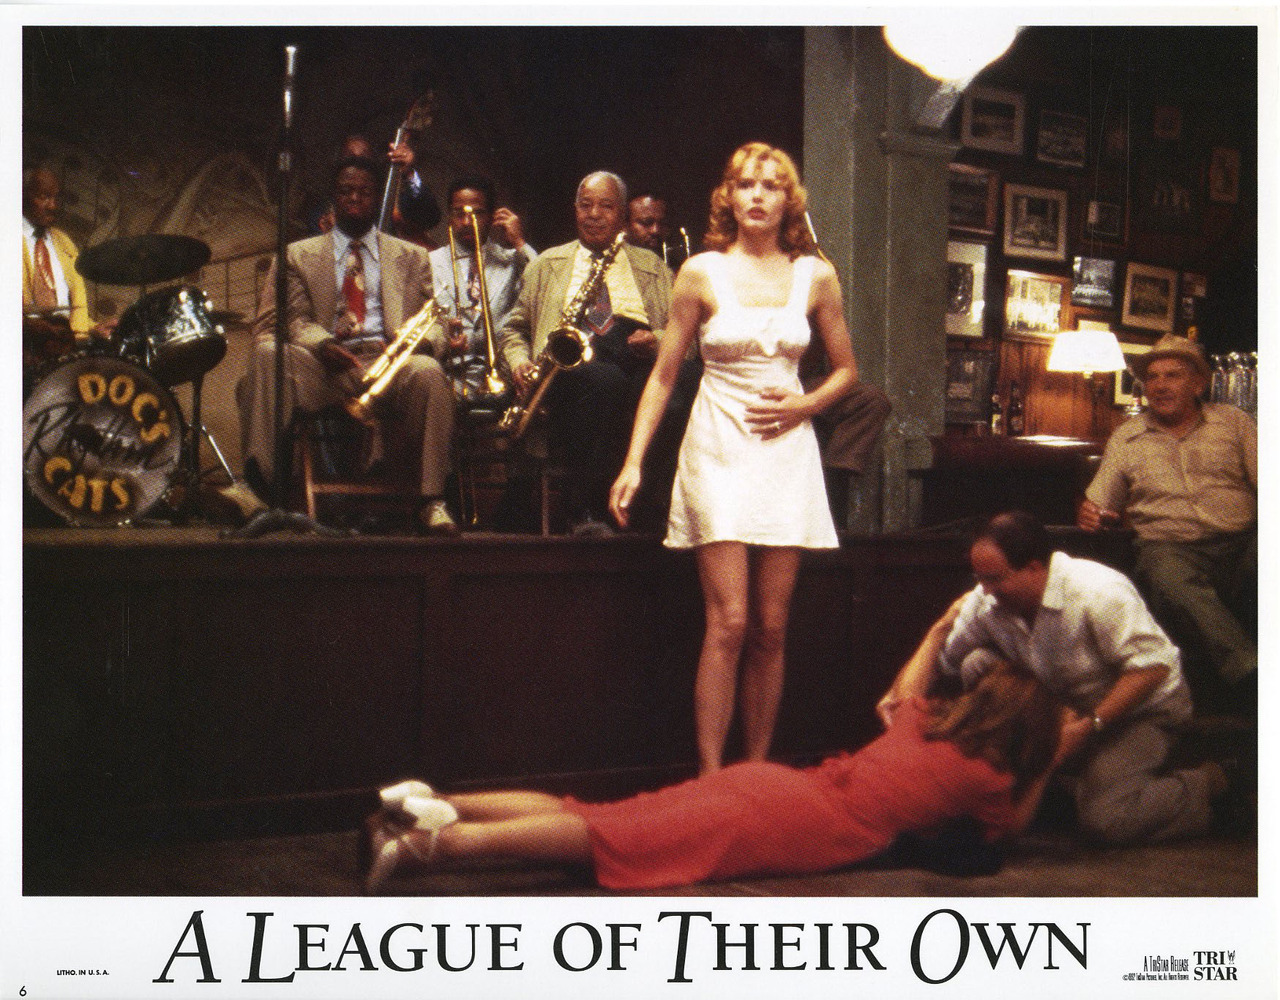 A League of their Own, US lobby card. 1992